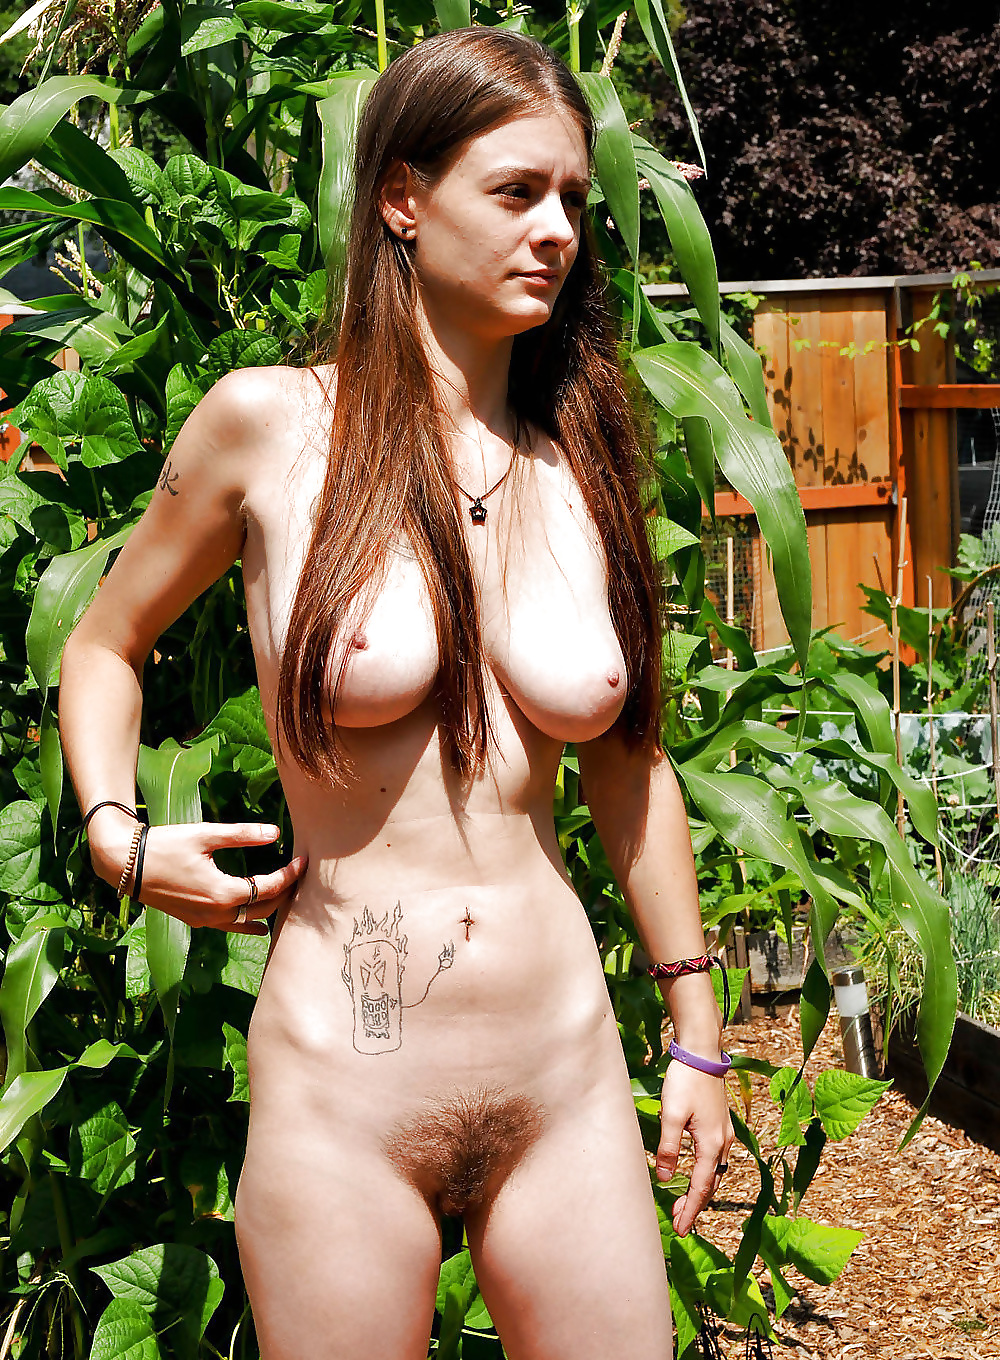 young-hippies-women-naked-michelle